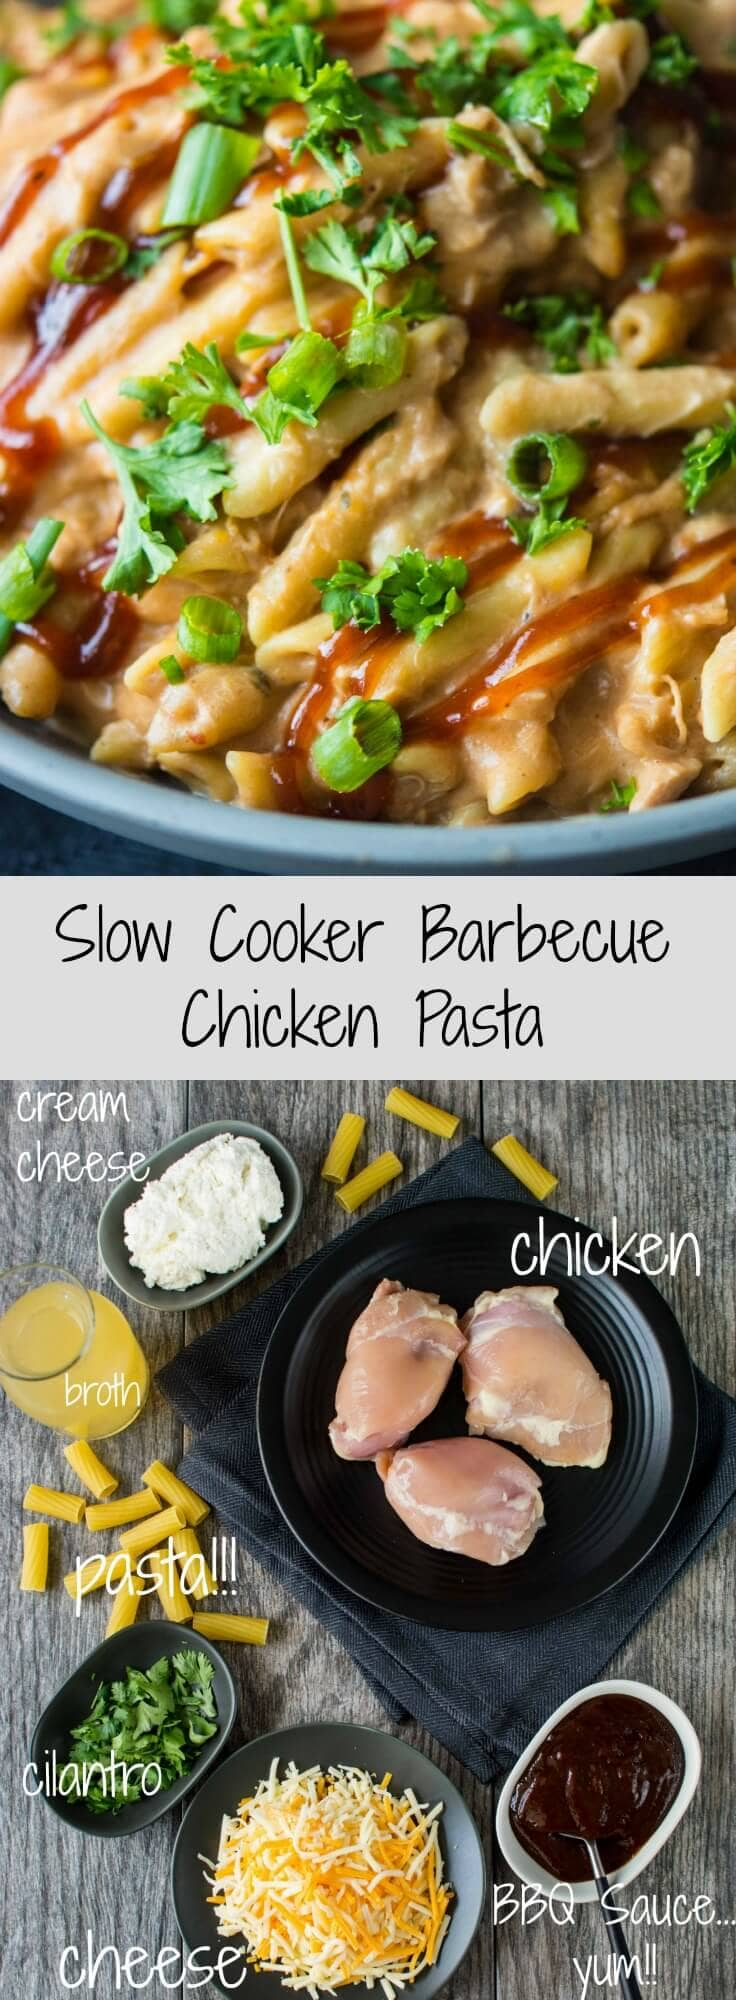 Slow Cooker Barbecue Chicken Pasta